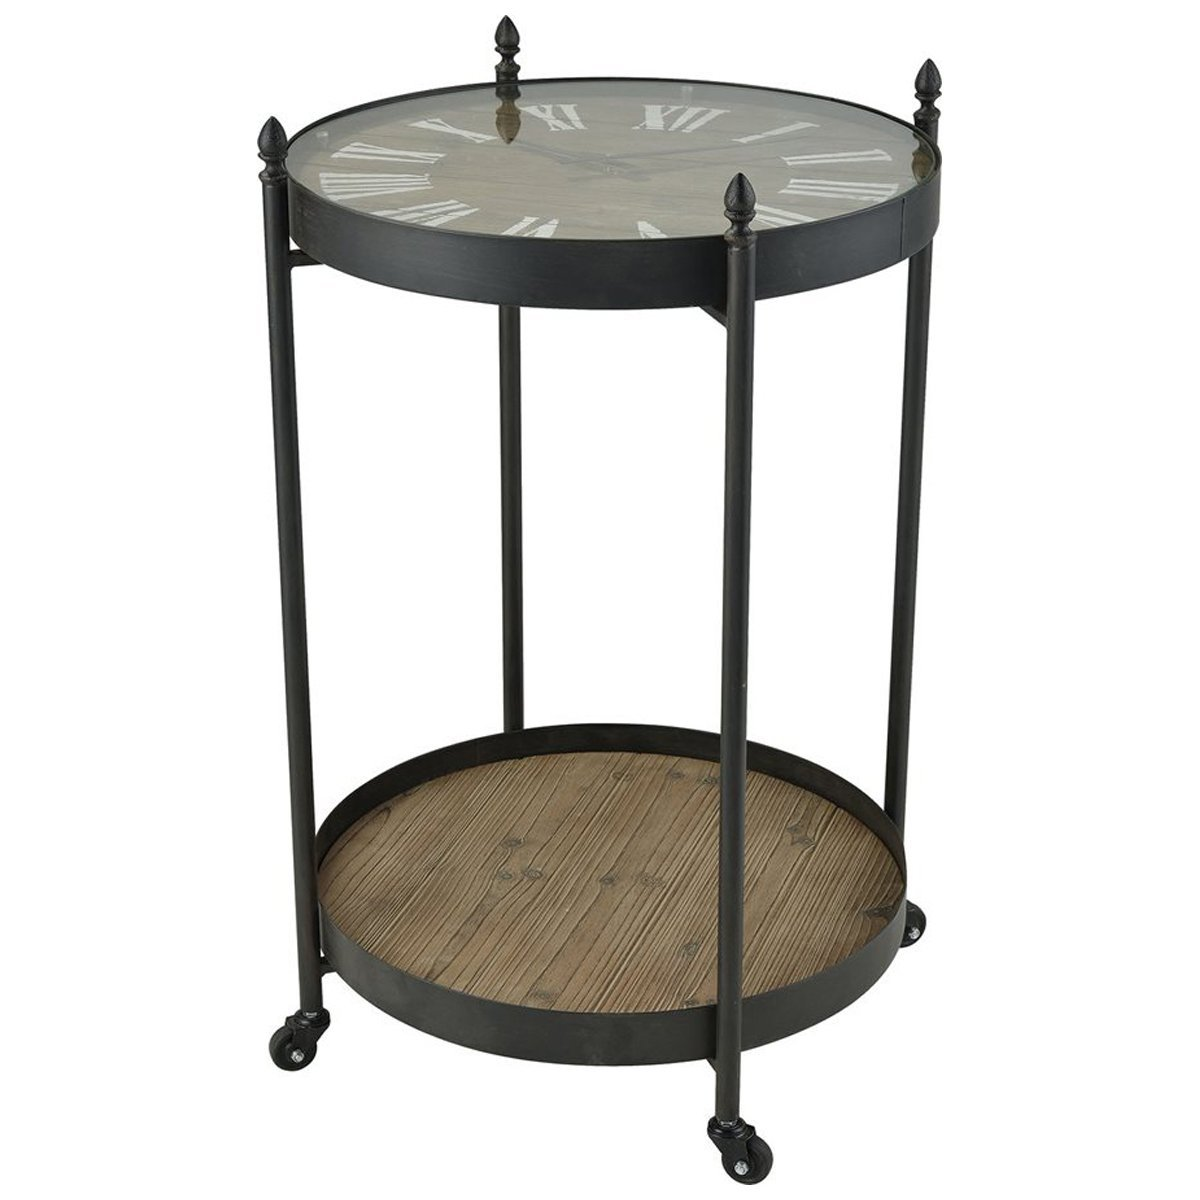 accent tables bramsworth black metal wood glass furniture table side clamp legs quilt runner patterns clearance dining room sets modern brass lamp entryway console with storage